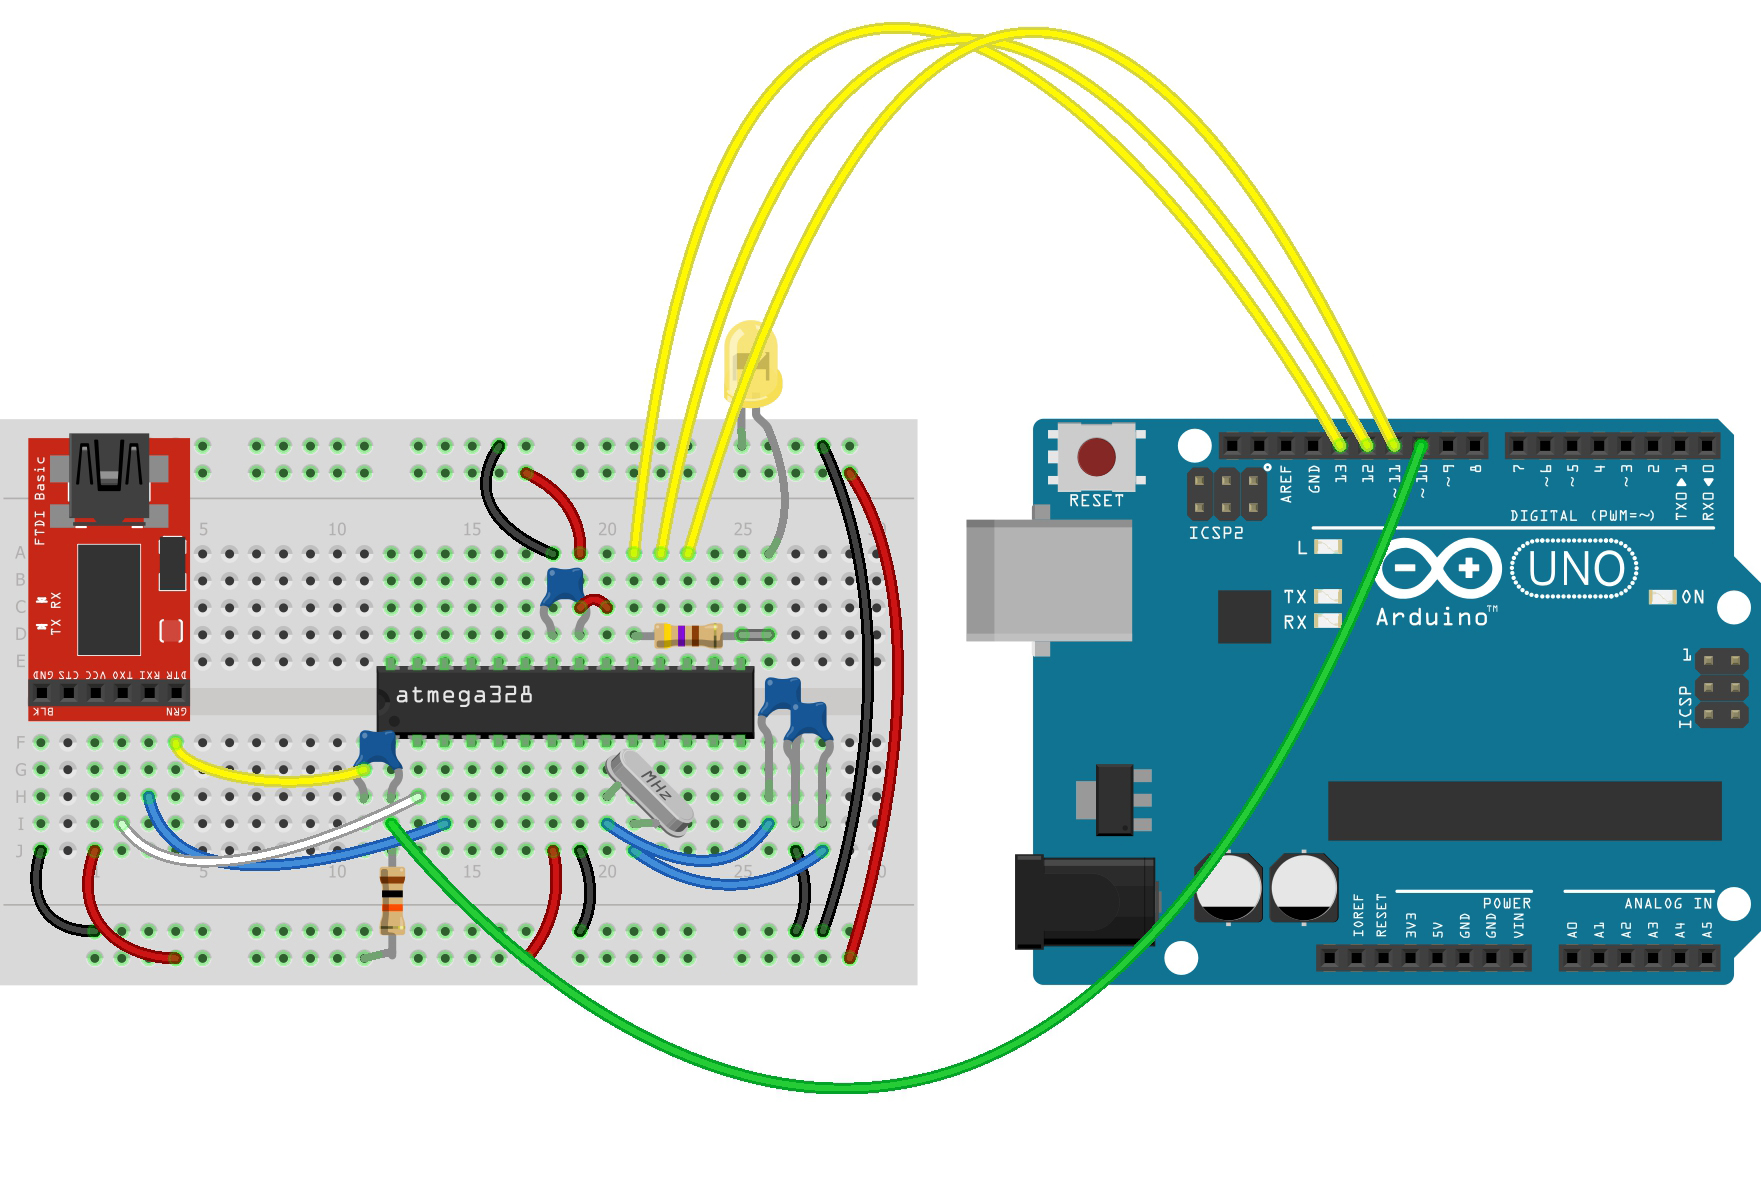 Arduino Parts Diy Guide Teach Me Microcontrollers Build Your Own Circuit On A Breadboard Fritzing Diagram For Bootloader